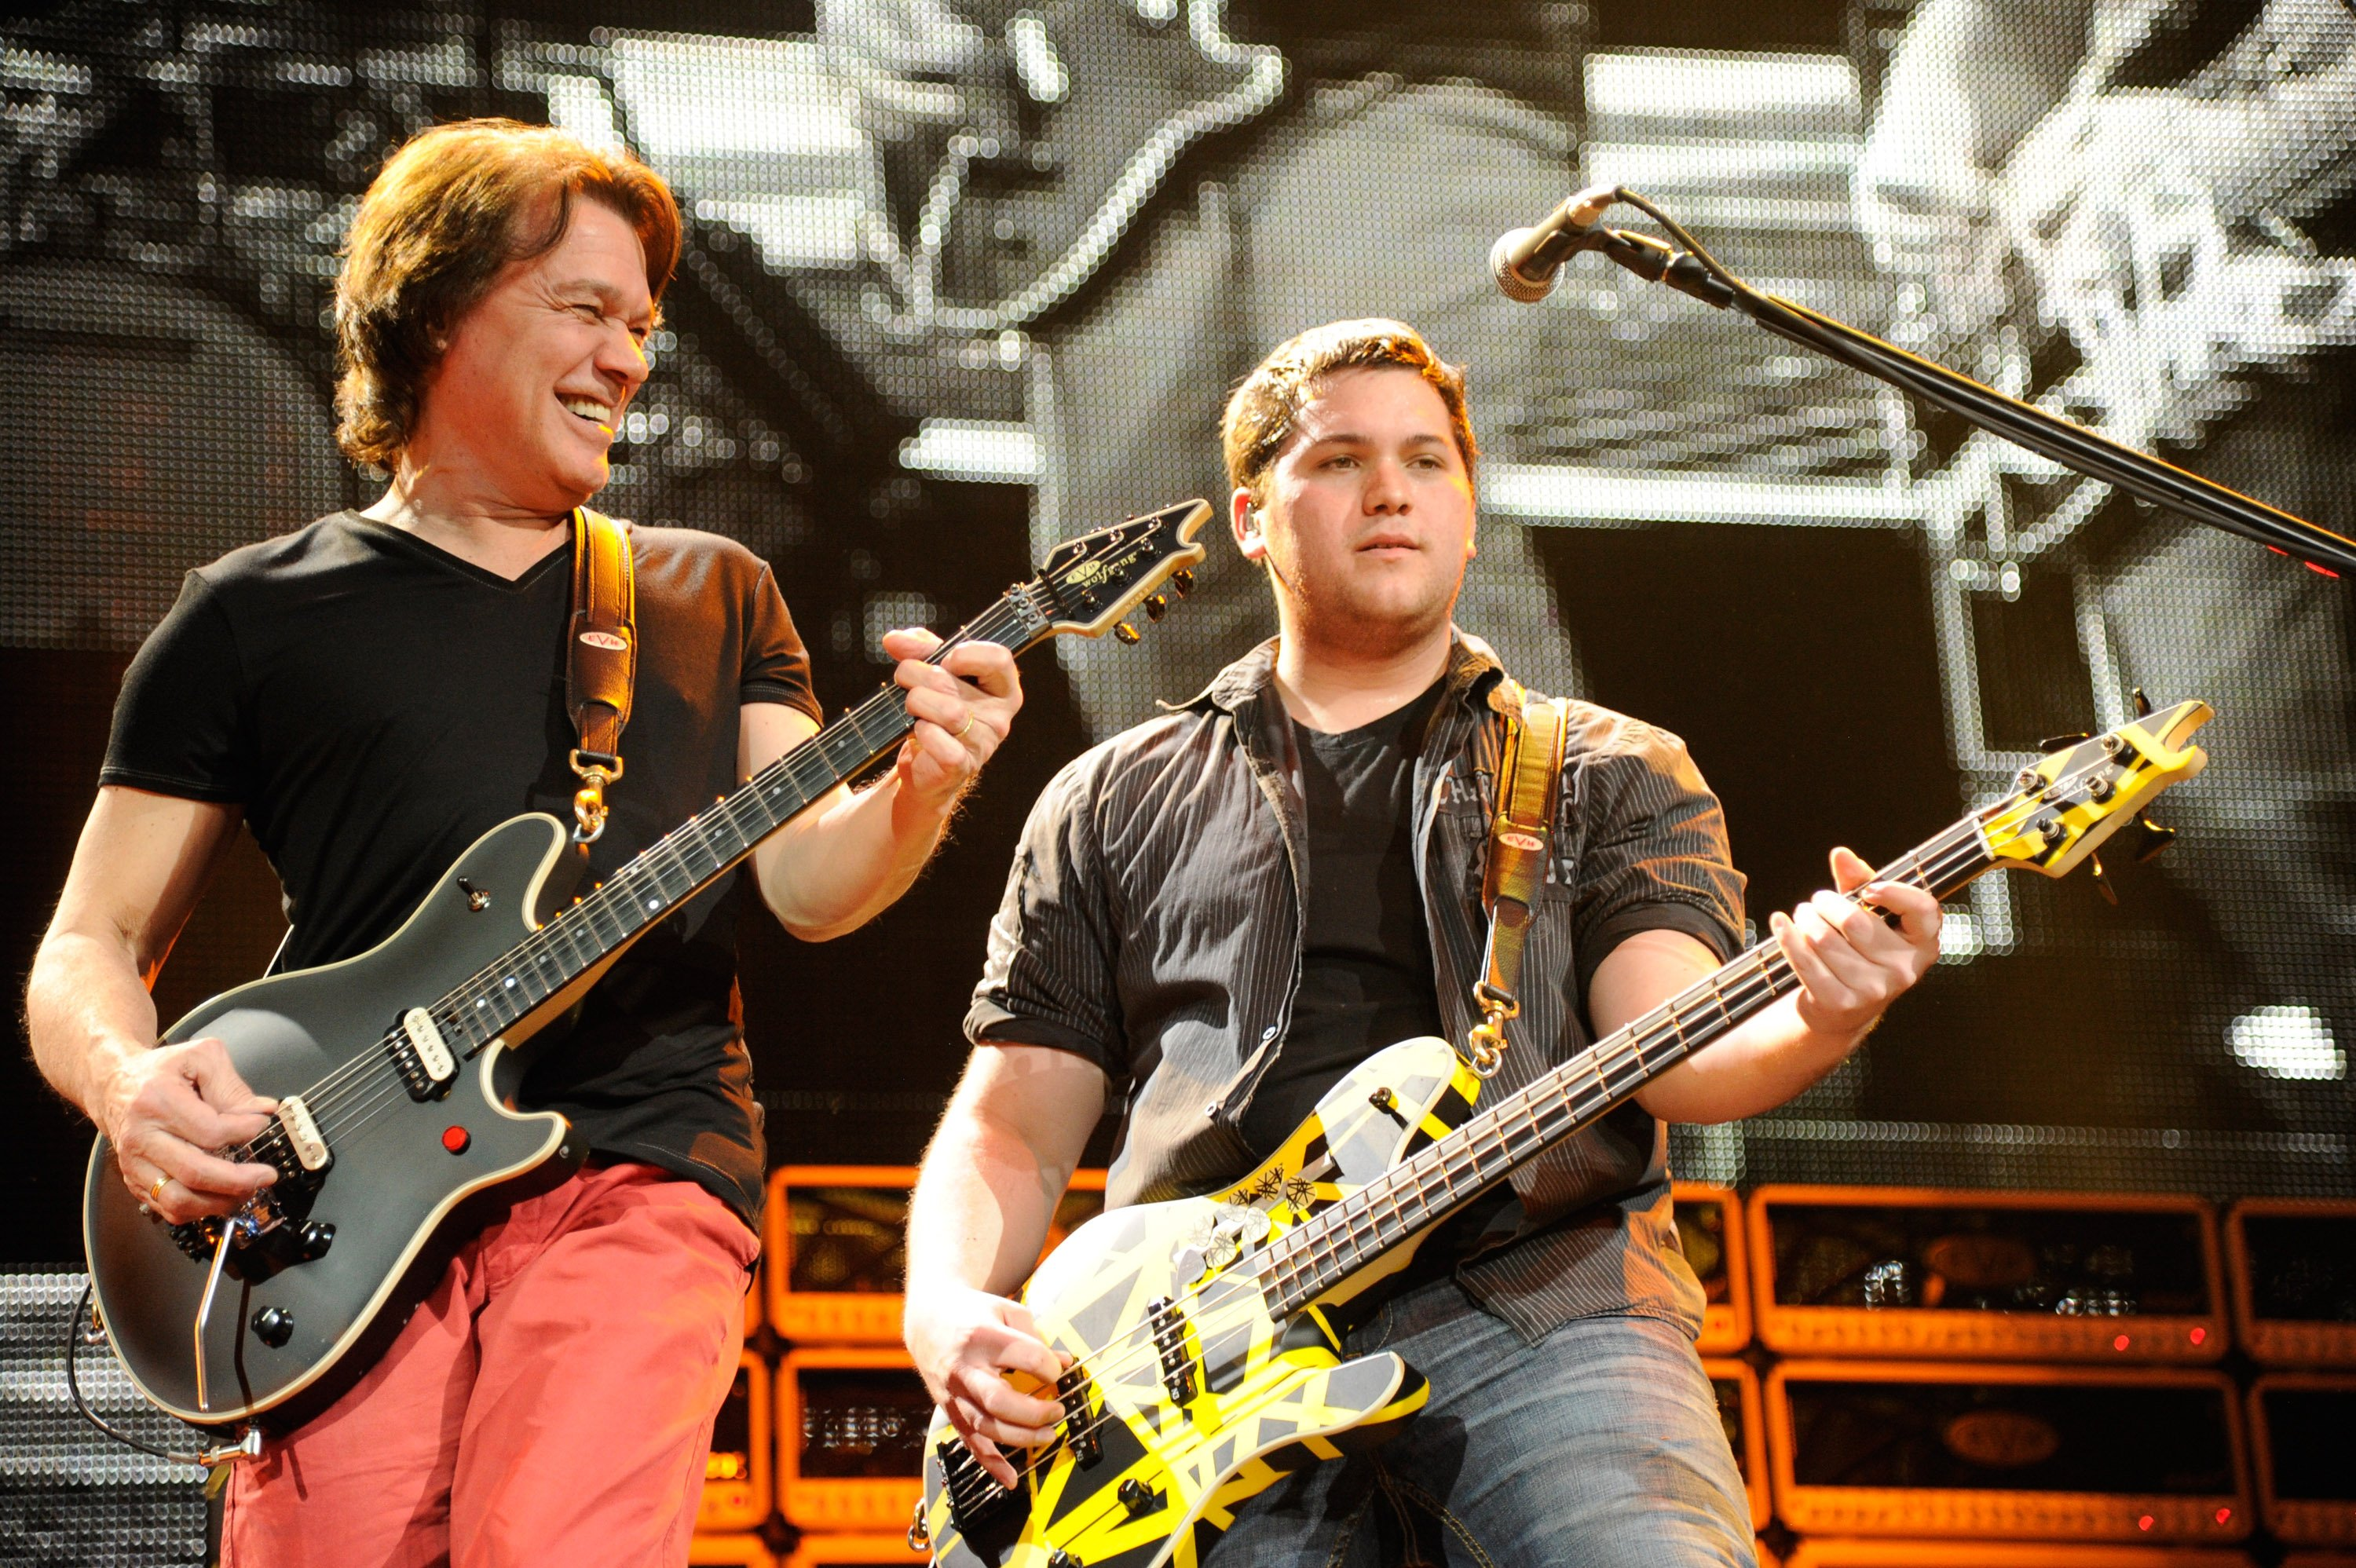 """Eddie Van Halen and Wolfgang Van Halen perform during """"A Different Kind of Truth"""" tour at Madison Square Garden on February 28, 2012 in New York City 